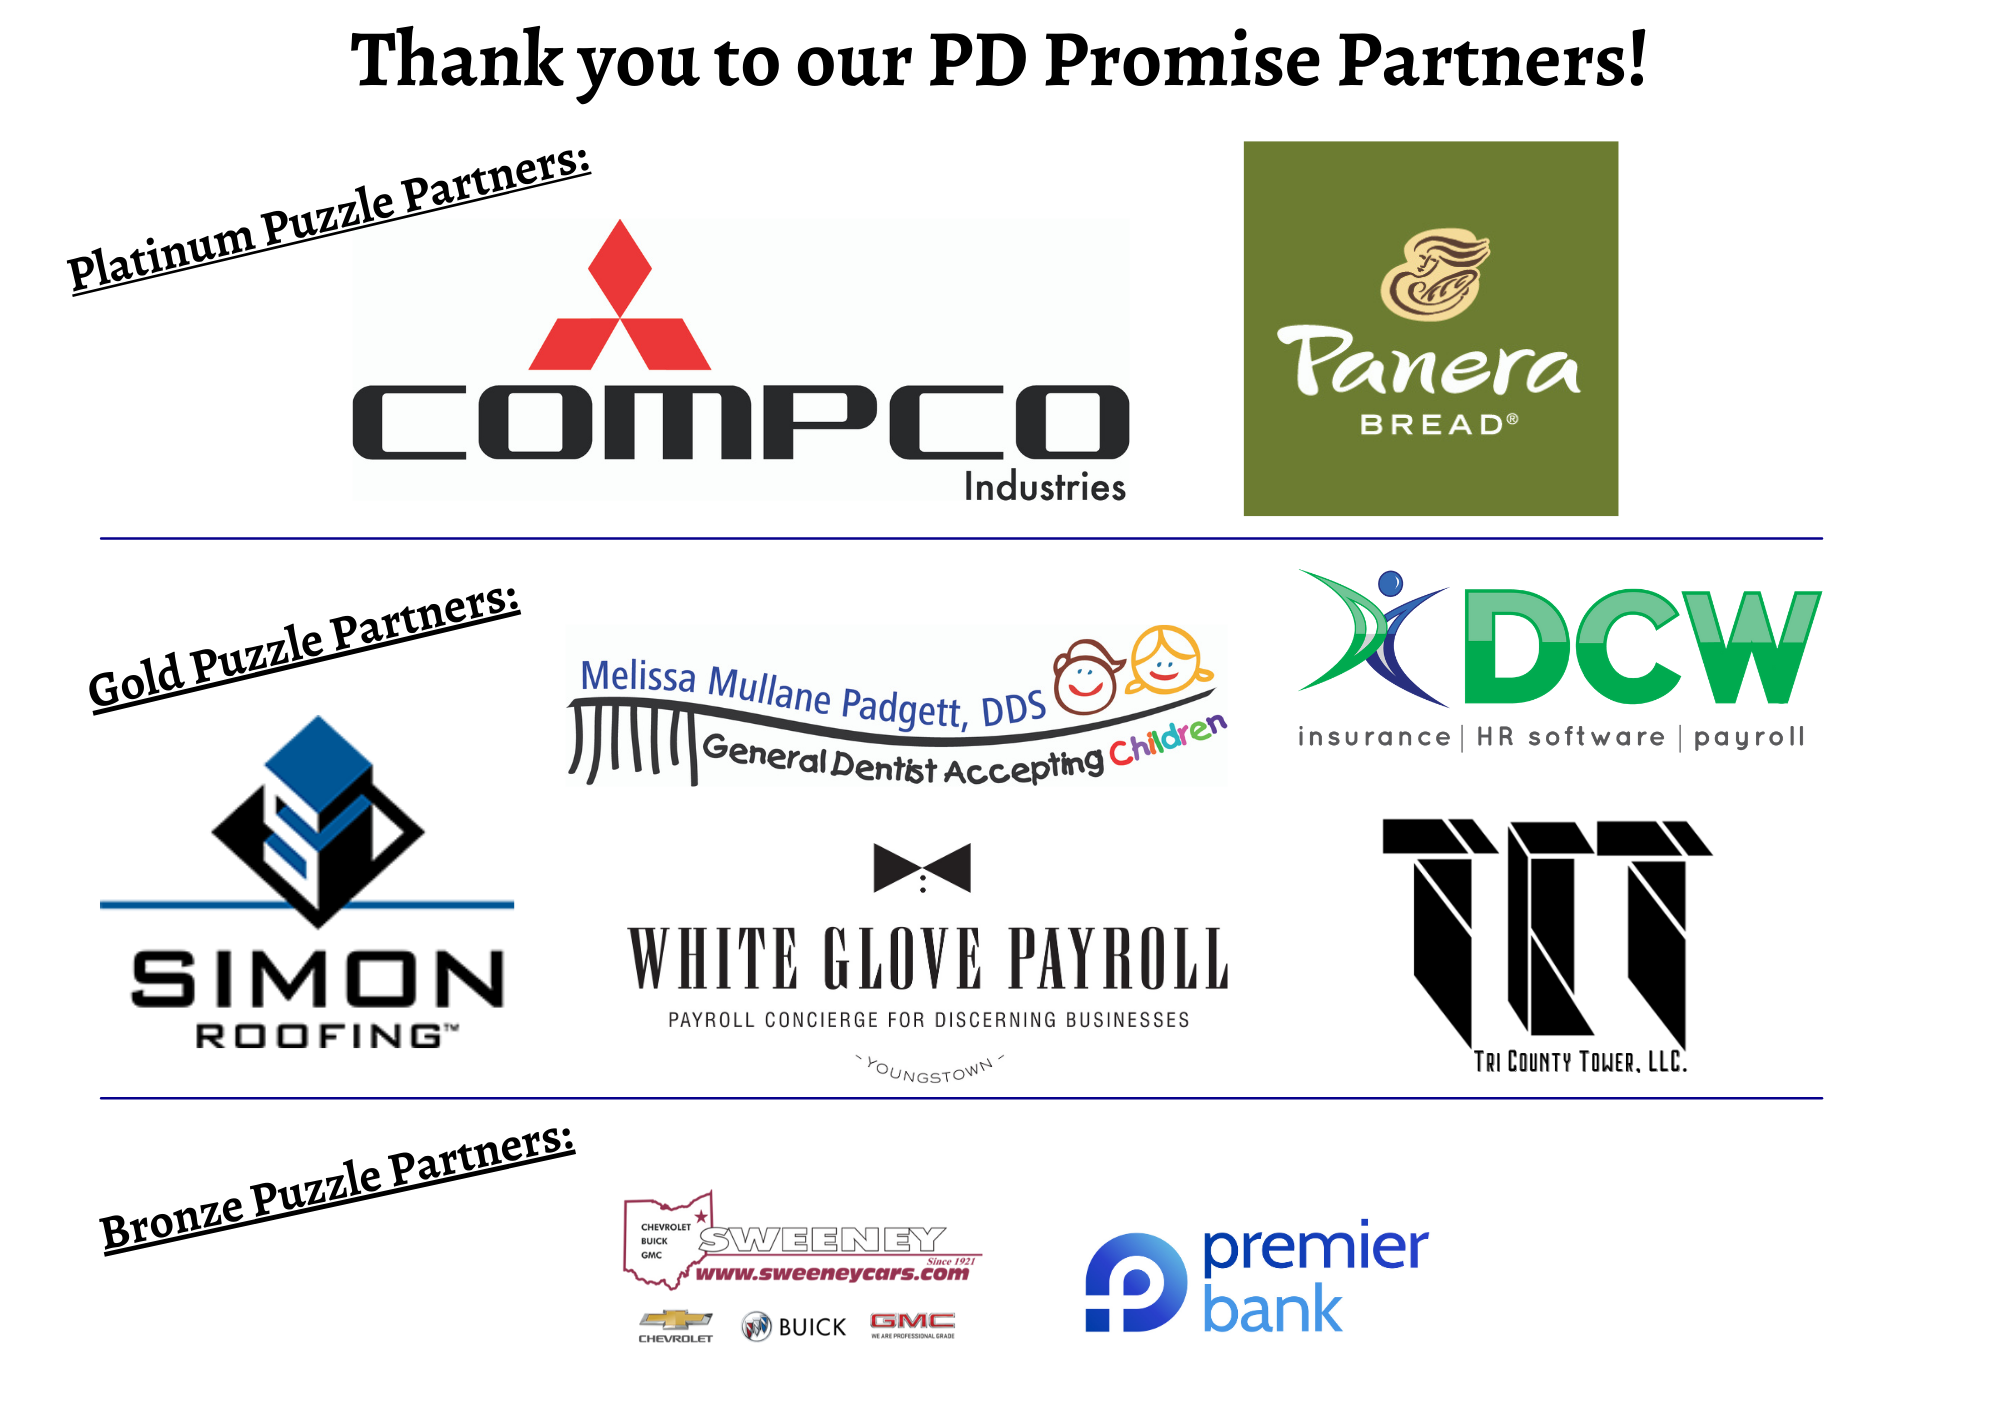 2021 PD PROMISE PARTNERS